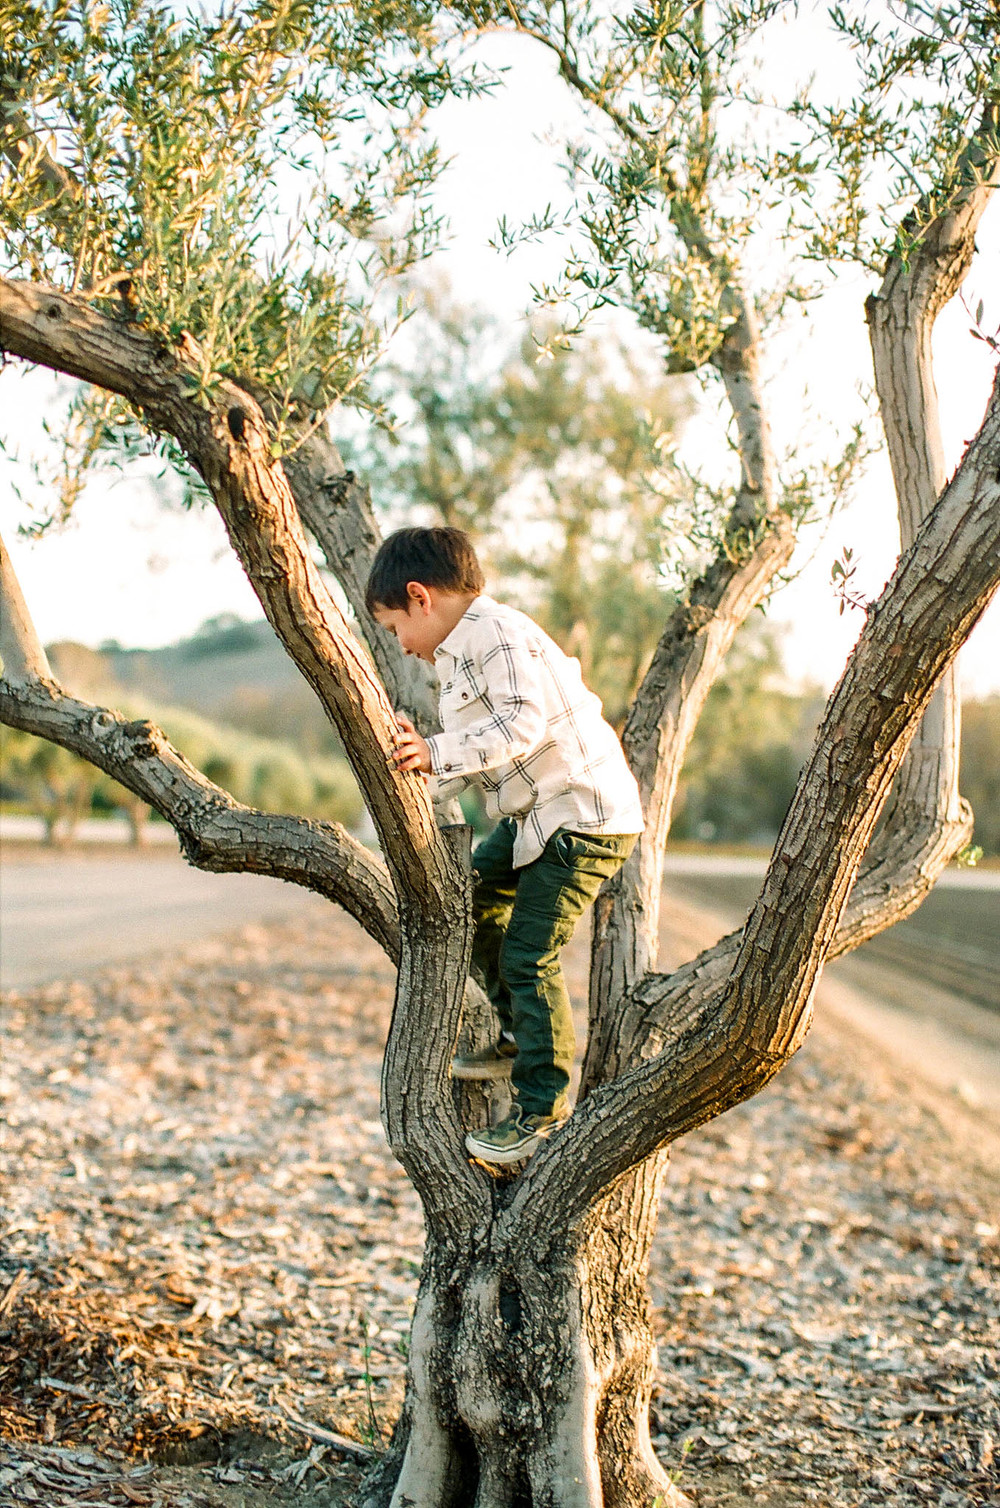 A young boy playfully climbs up in a small tree with his head turned away from the camera, in a child photography session by Twinkle Star Photography, an Orcutt California child photographer.